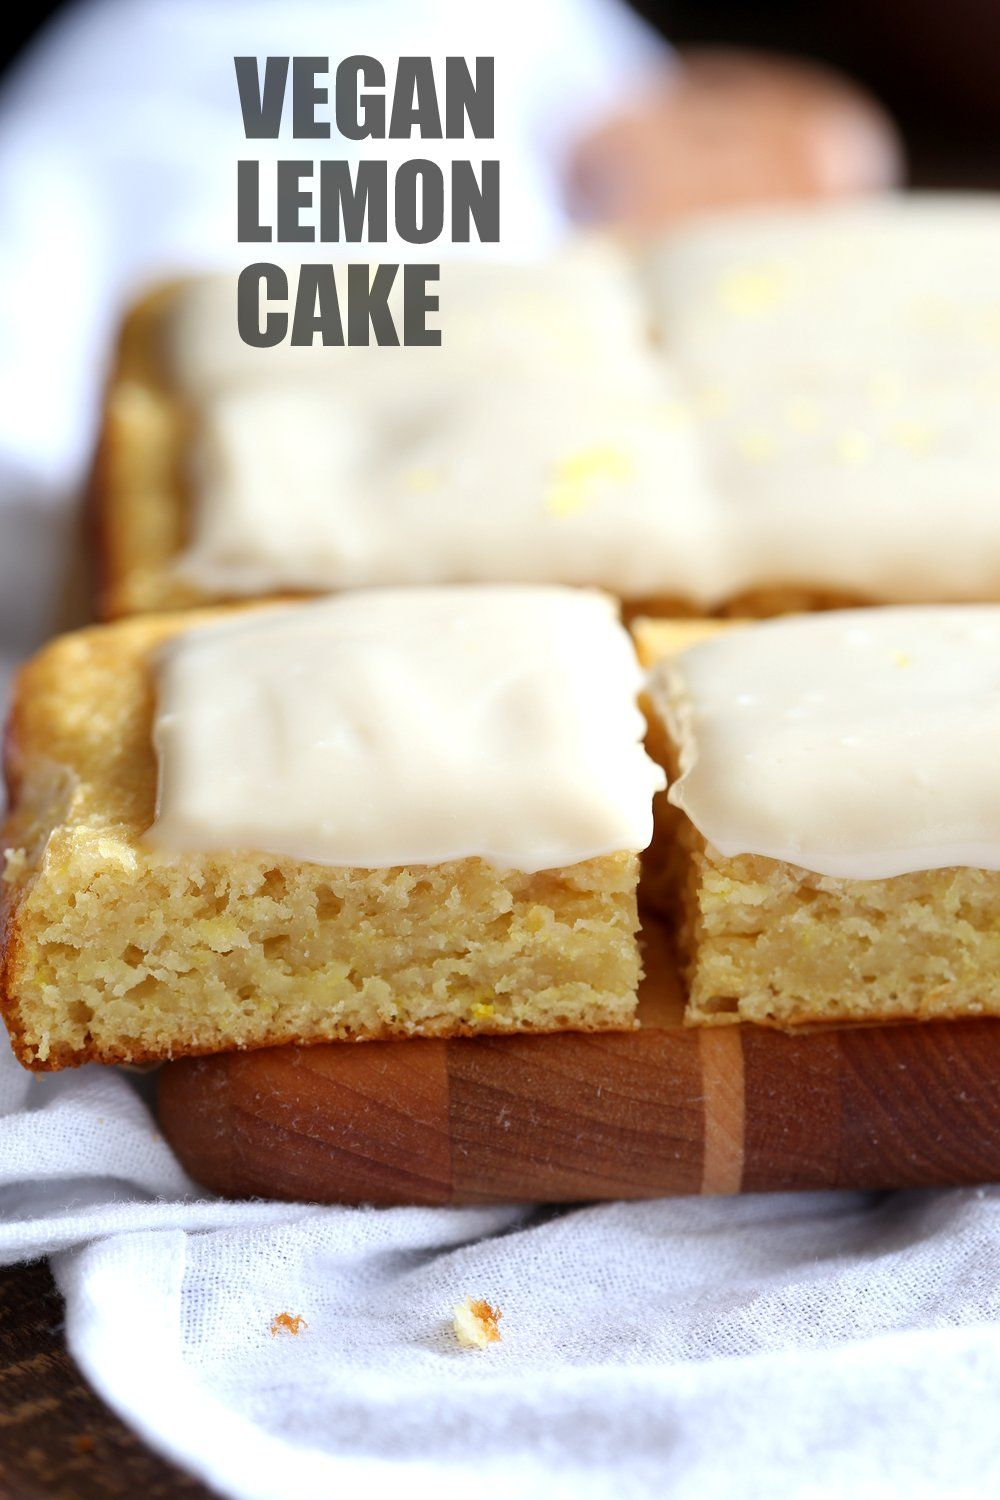 Vegan Lemon Cake with Cream Cheese Frosting Vegan Lemon Cake with Cream Cheese Frosting. No added refined sugar in this soft and Delicious Lemon Cake! Make into cupcakes, loaf or a sheet pan cake. Can be nut-free |